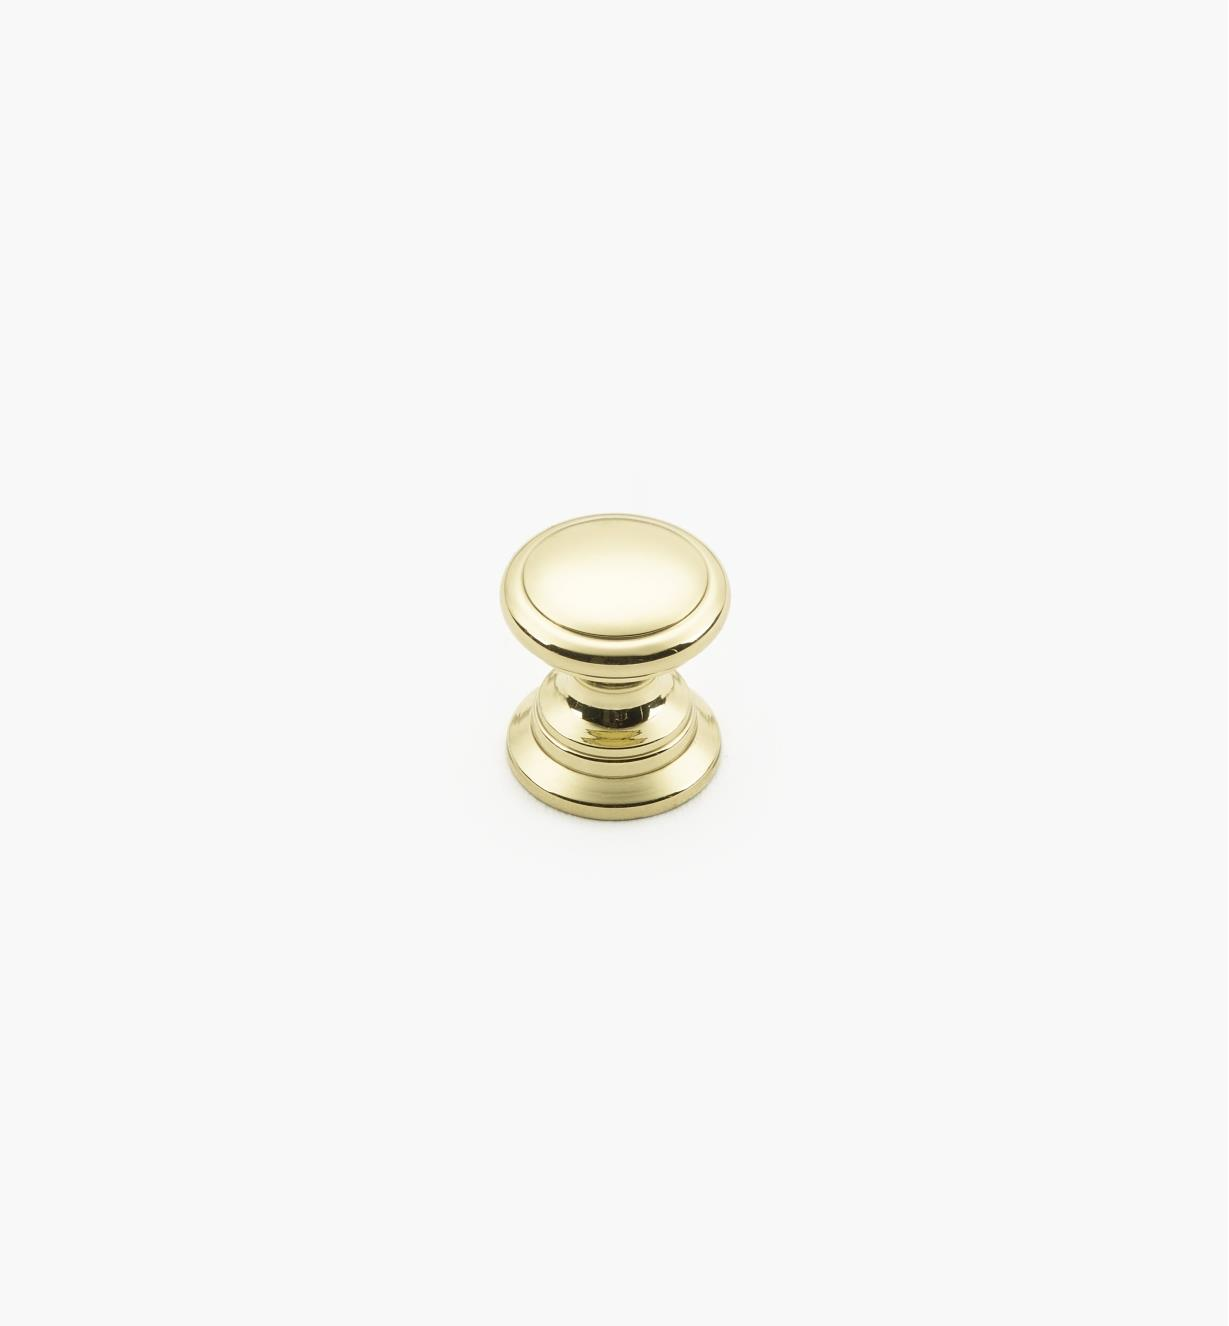 01W1340 - 13mm x 14mm Brass Knob